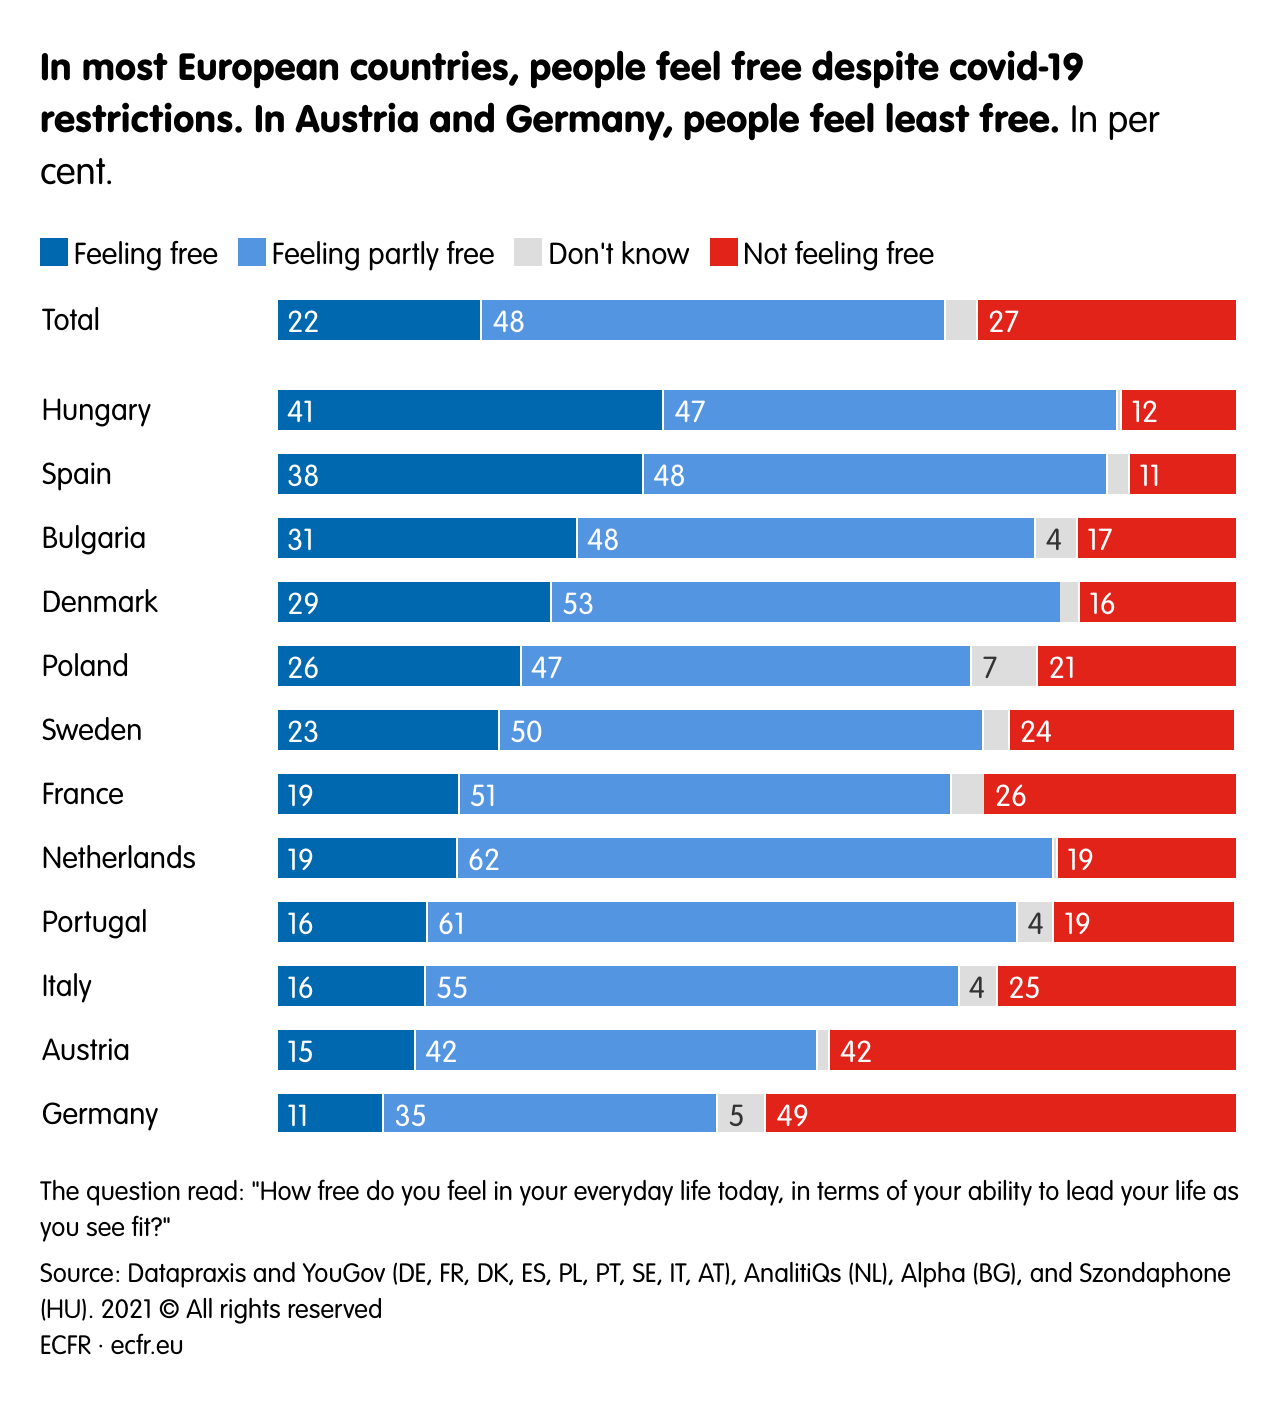 In most European countries, people feel free despite covid-19 restrictions. In Austria and Germany, people feel least free.